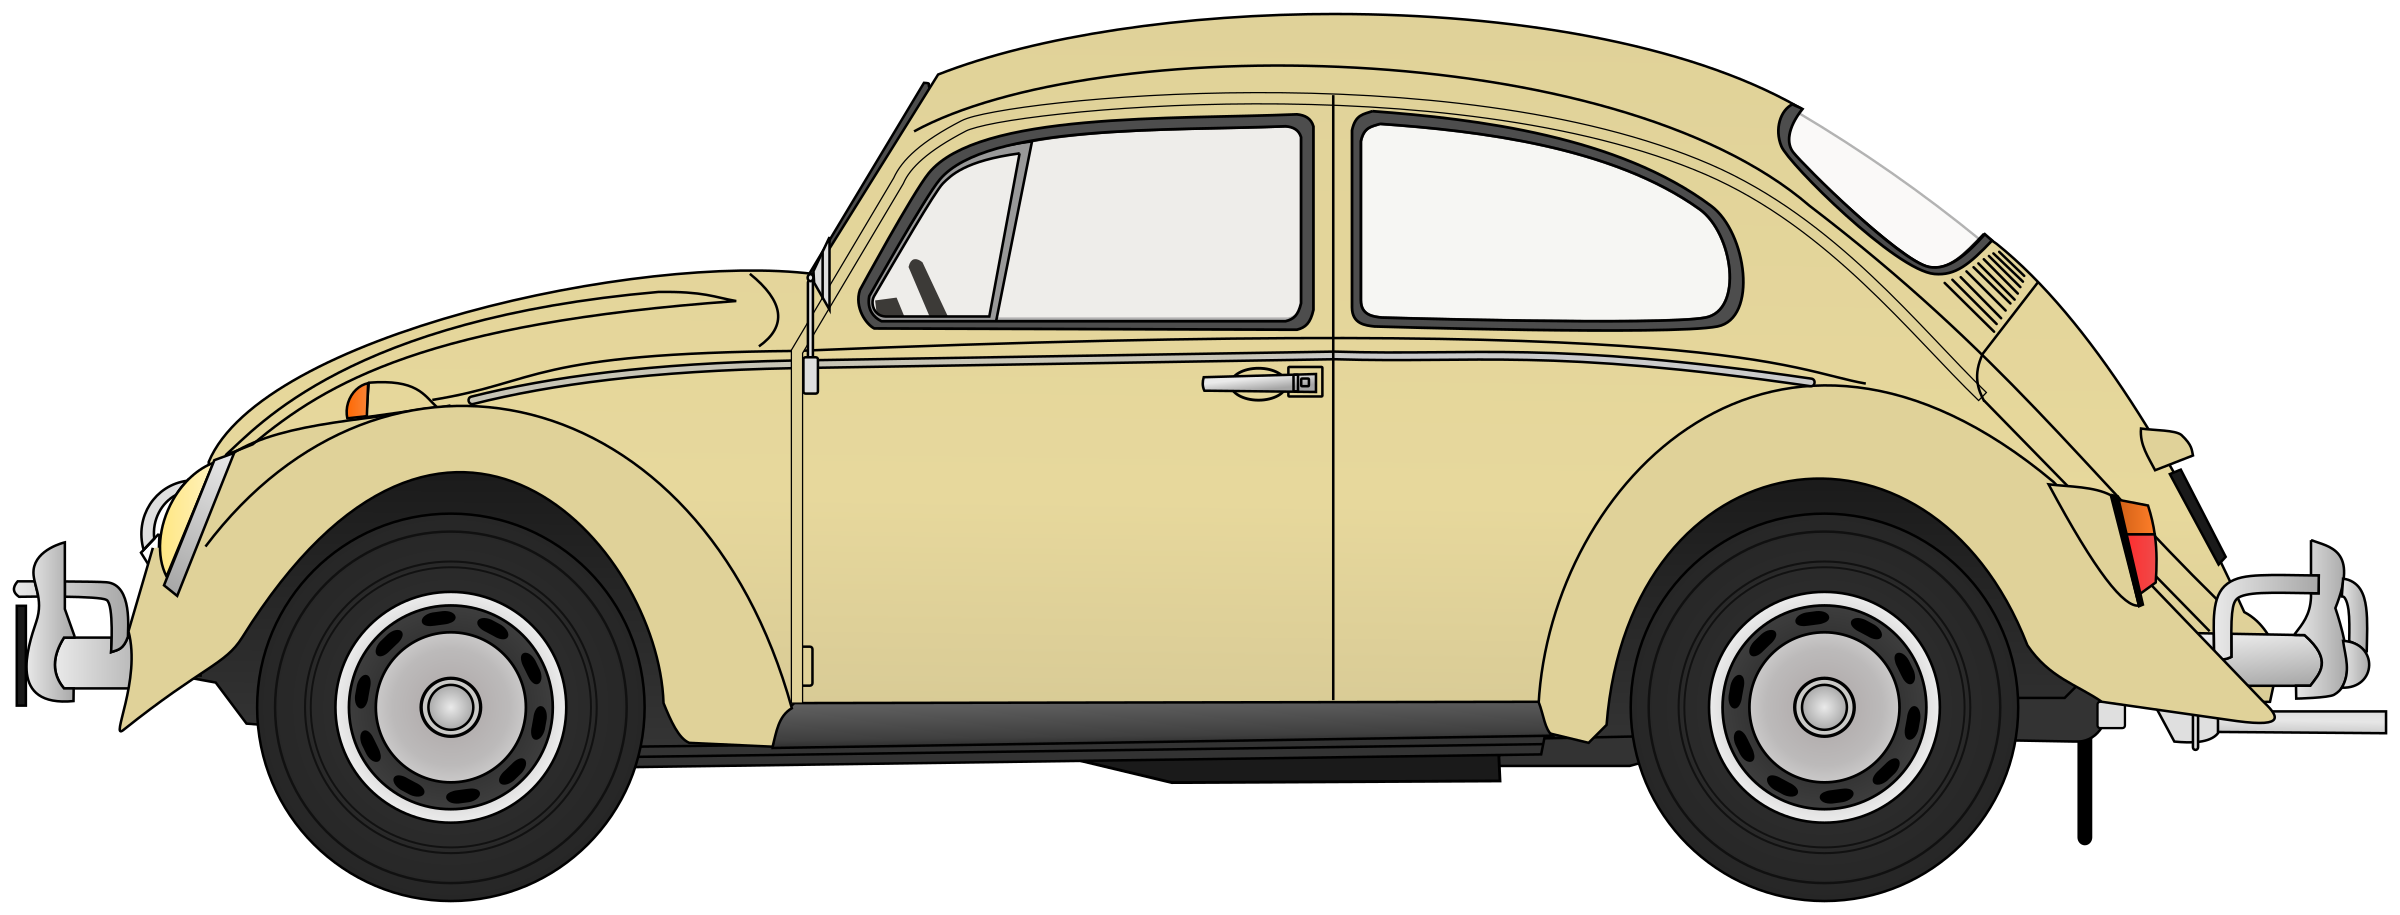 Vw Bug Vector At Getdrawingscom Free For Personal Use Vw Bug